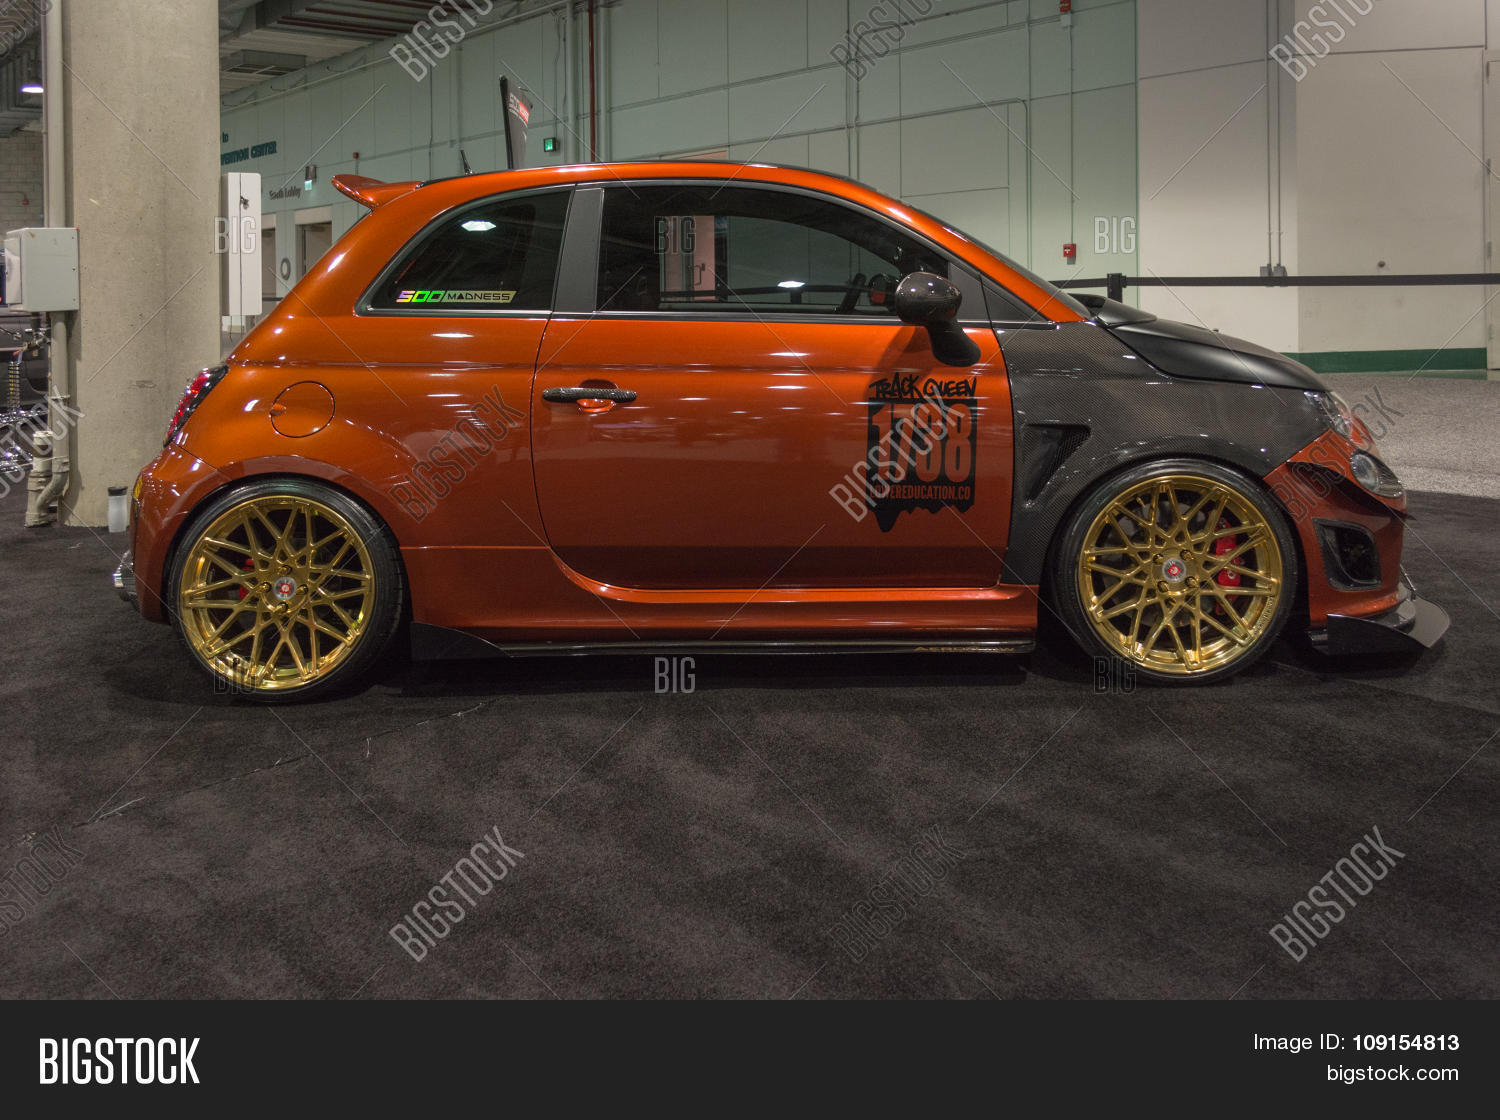 Fiat 500 Tuning On Image Photo Free Trial Bigstock